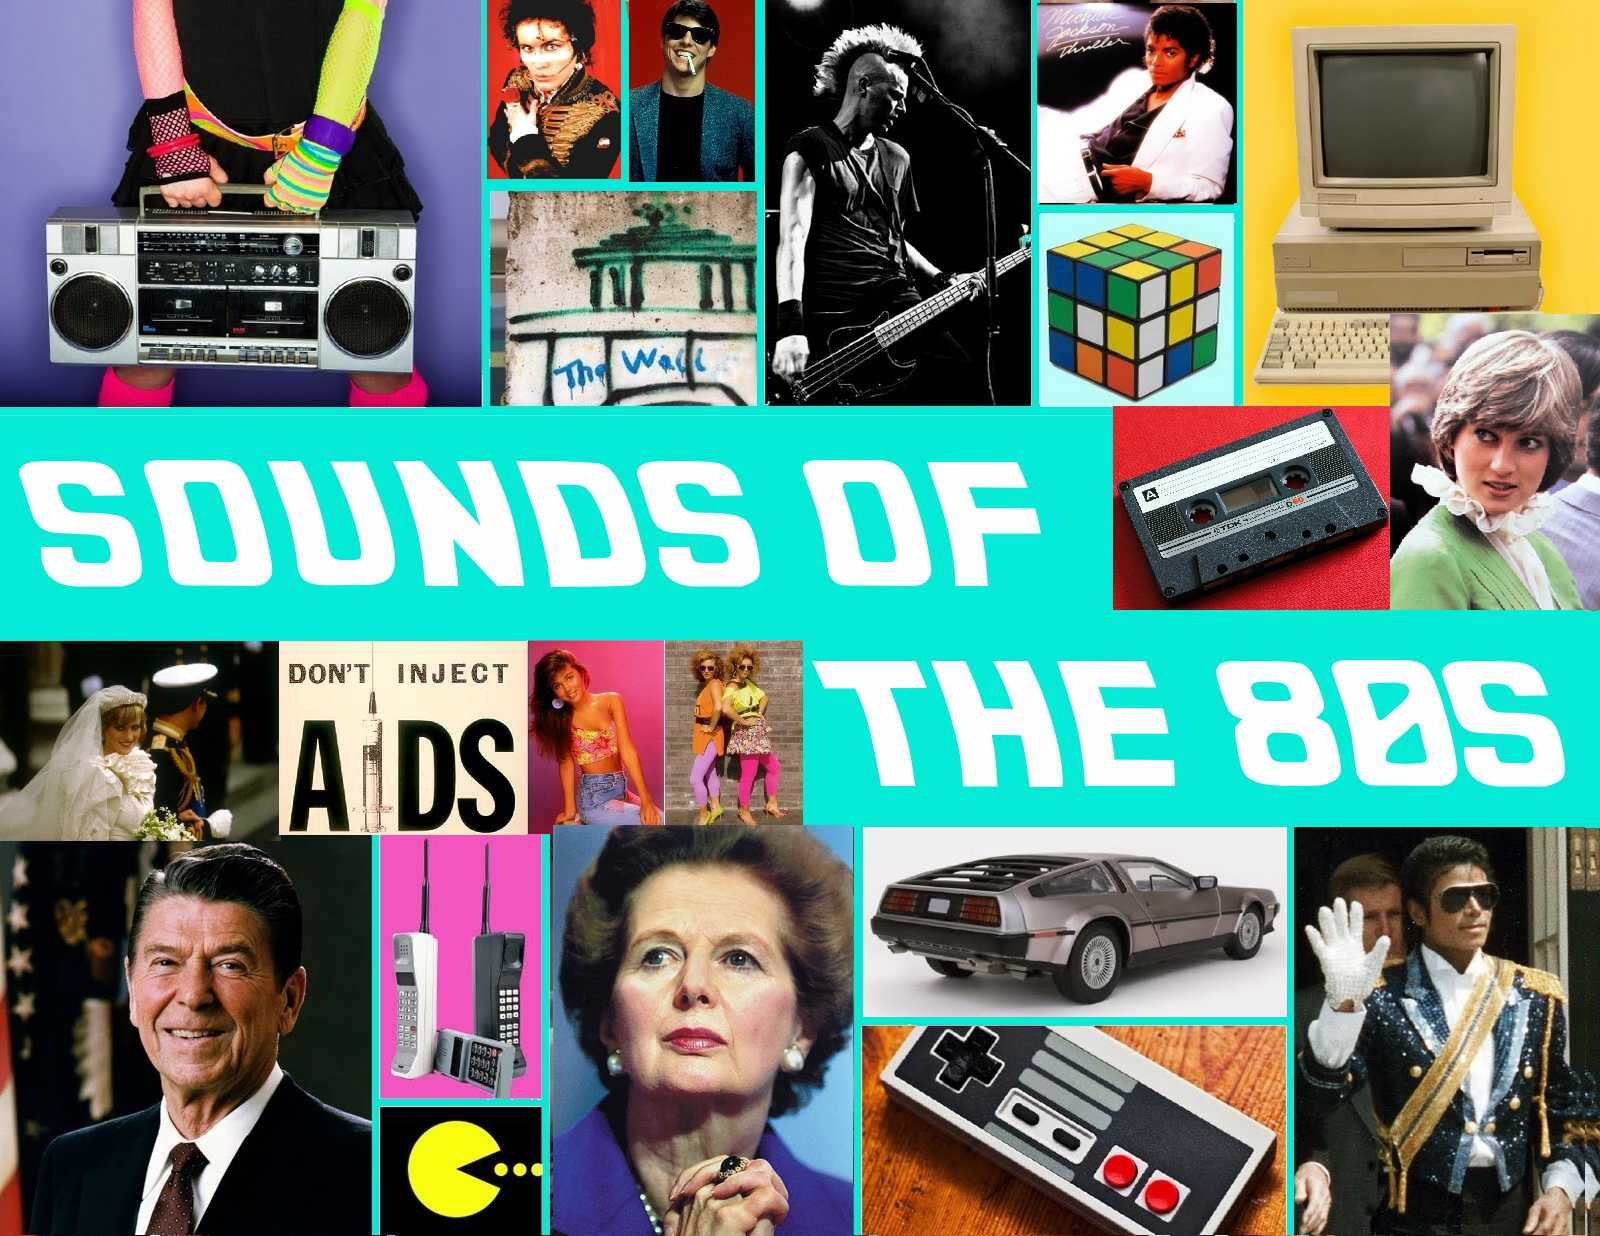 'Sounds of the Eighties' [Burgh House Media Productions:'Sounds of the Eighties']